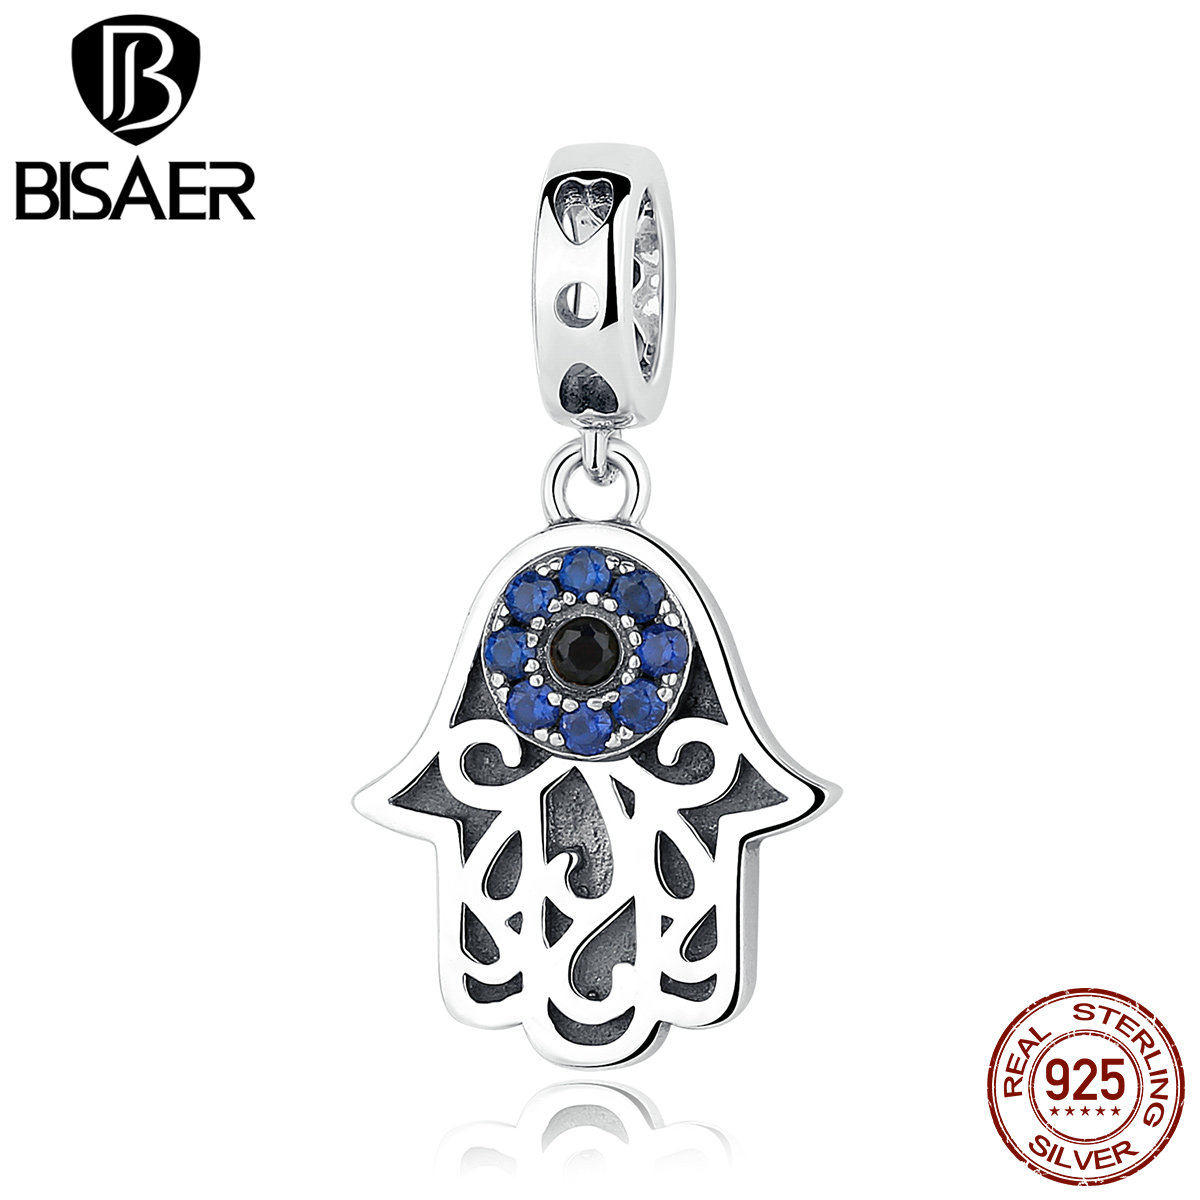 BISAER Eye Design Series 925 Sterling Charms Silver Blue Evil Eye Pendants Charms Fit Pan Bracelets & Bangles For Women Jewelry